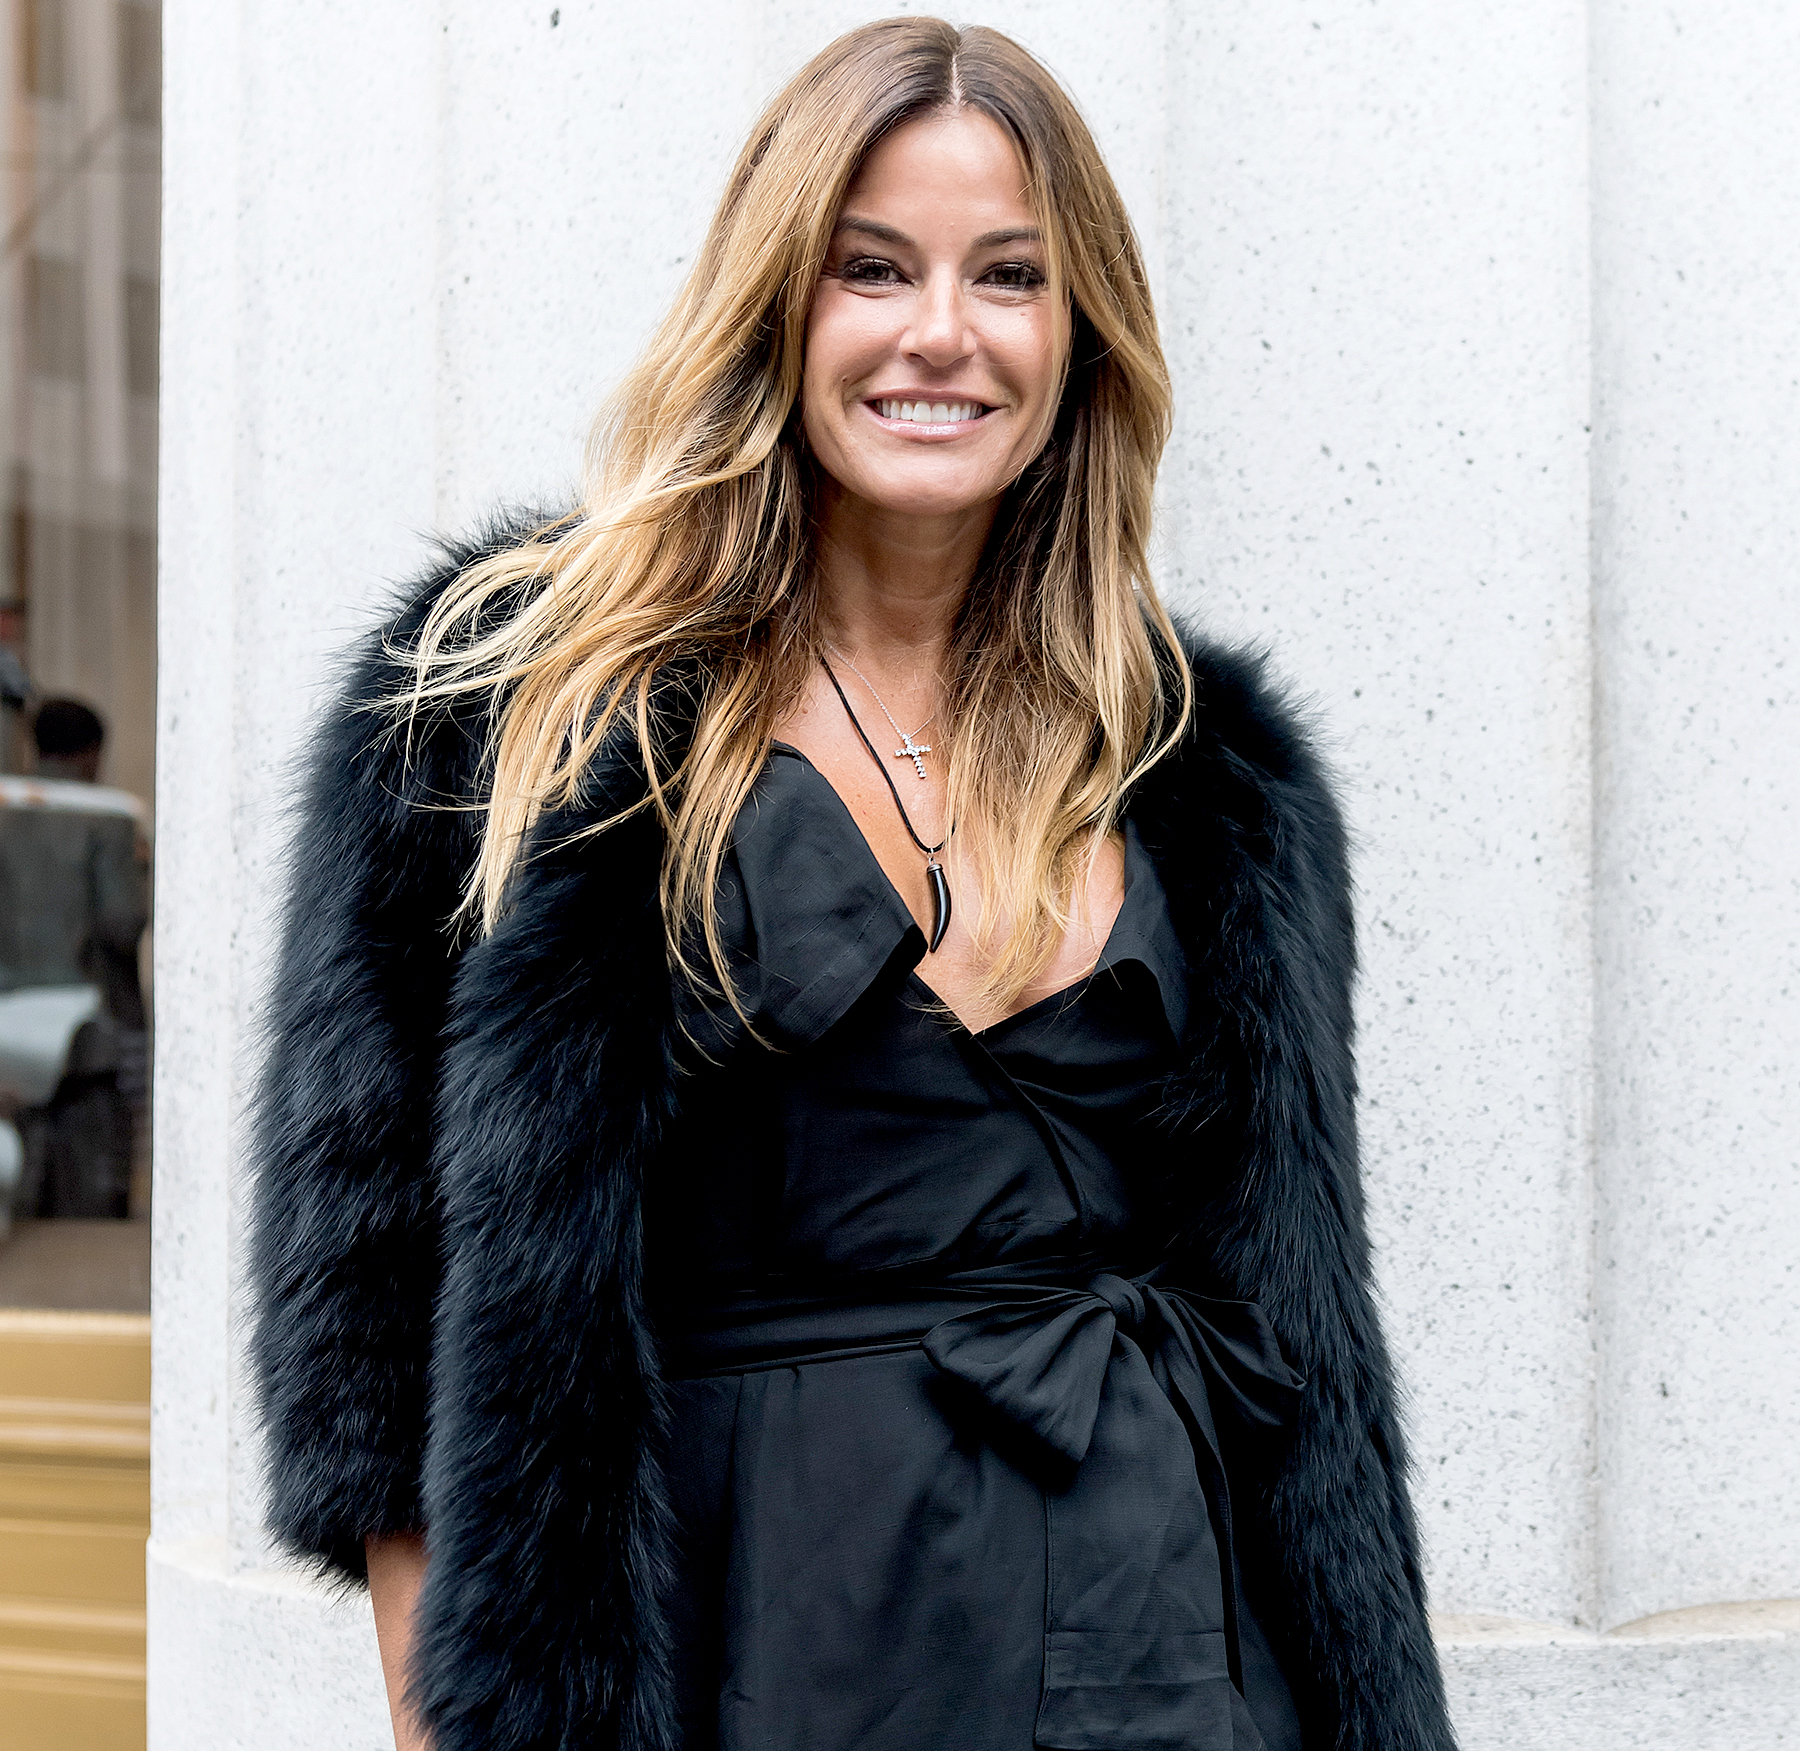 Kelly Killoren Bensimon is seen arriving to the Jill Stuart presentation during New York Fashion Week on February 11, 2017 in New York City.